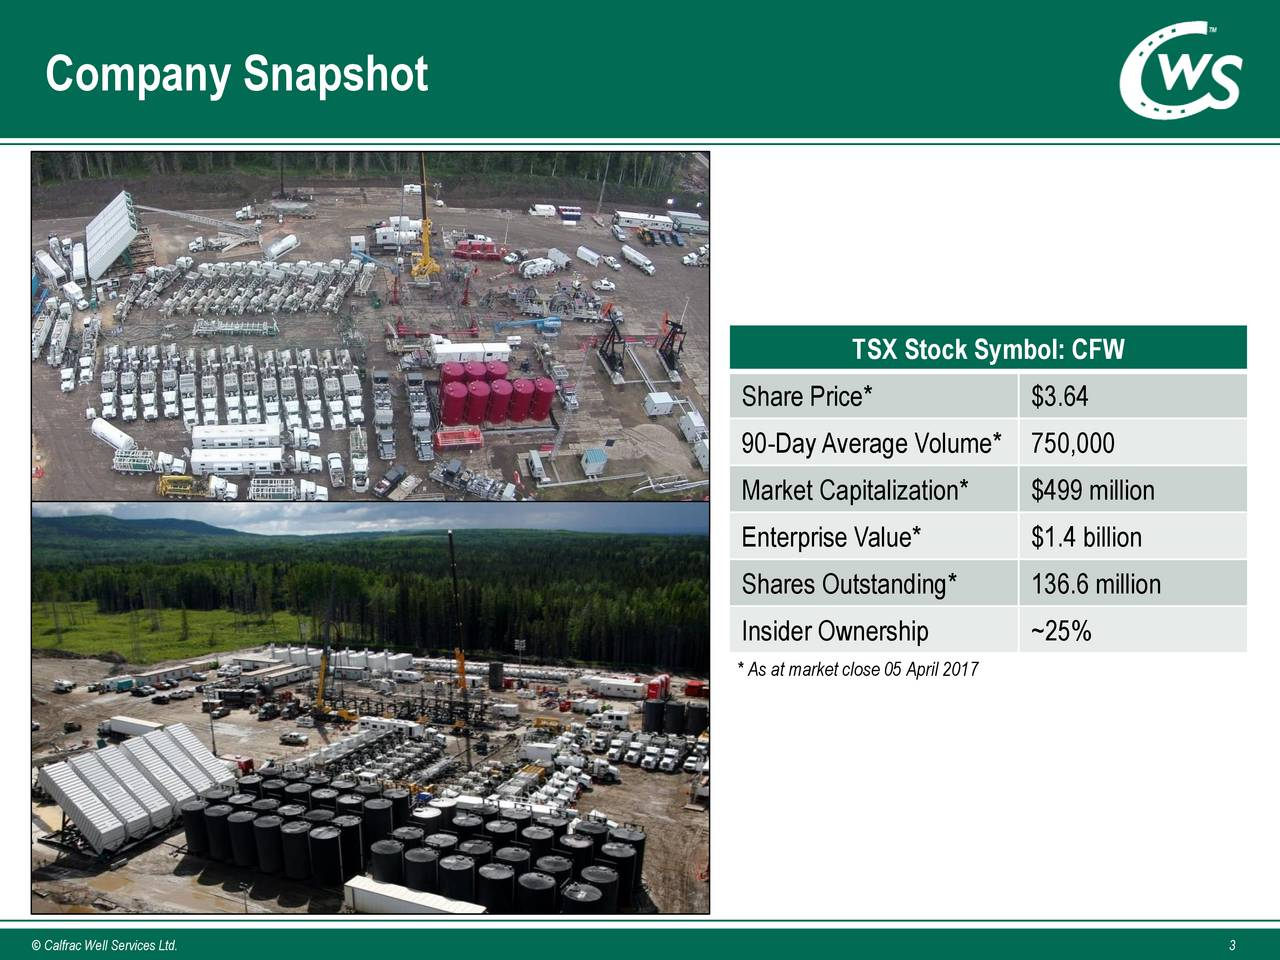 Calfrac well services ltd 2017 q1 results earnings call tsx stock symbol cfw share price 364 90 dayaverage volume 750000 market biocorpaavc Images